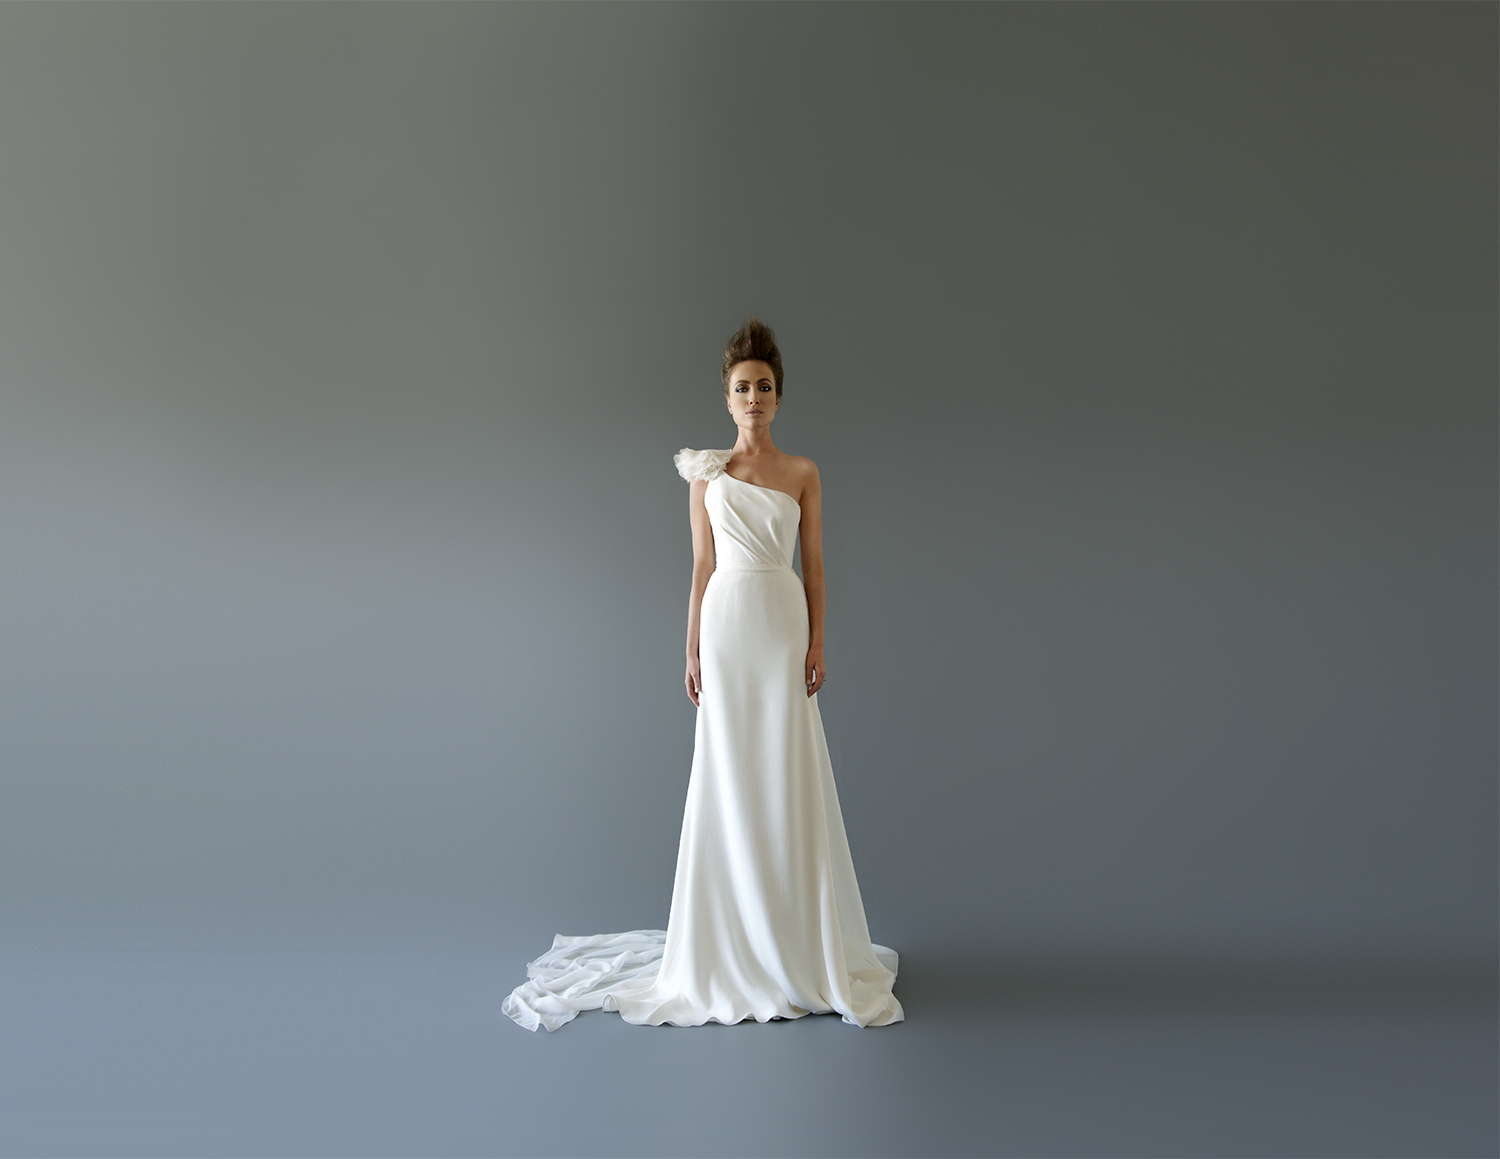 Cocoe Voci Bridal Gowns